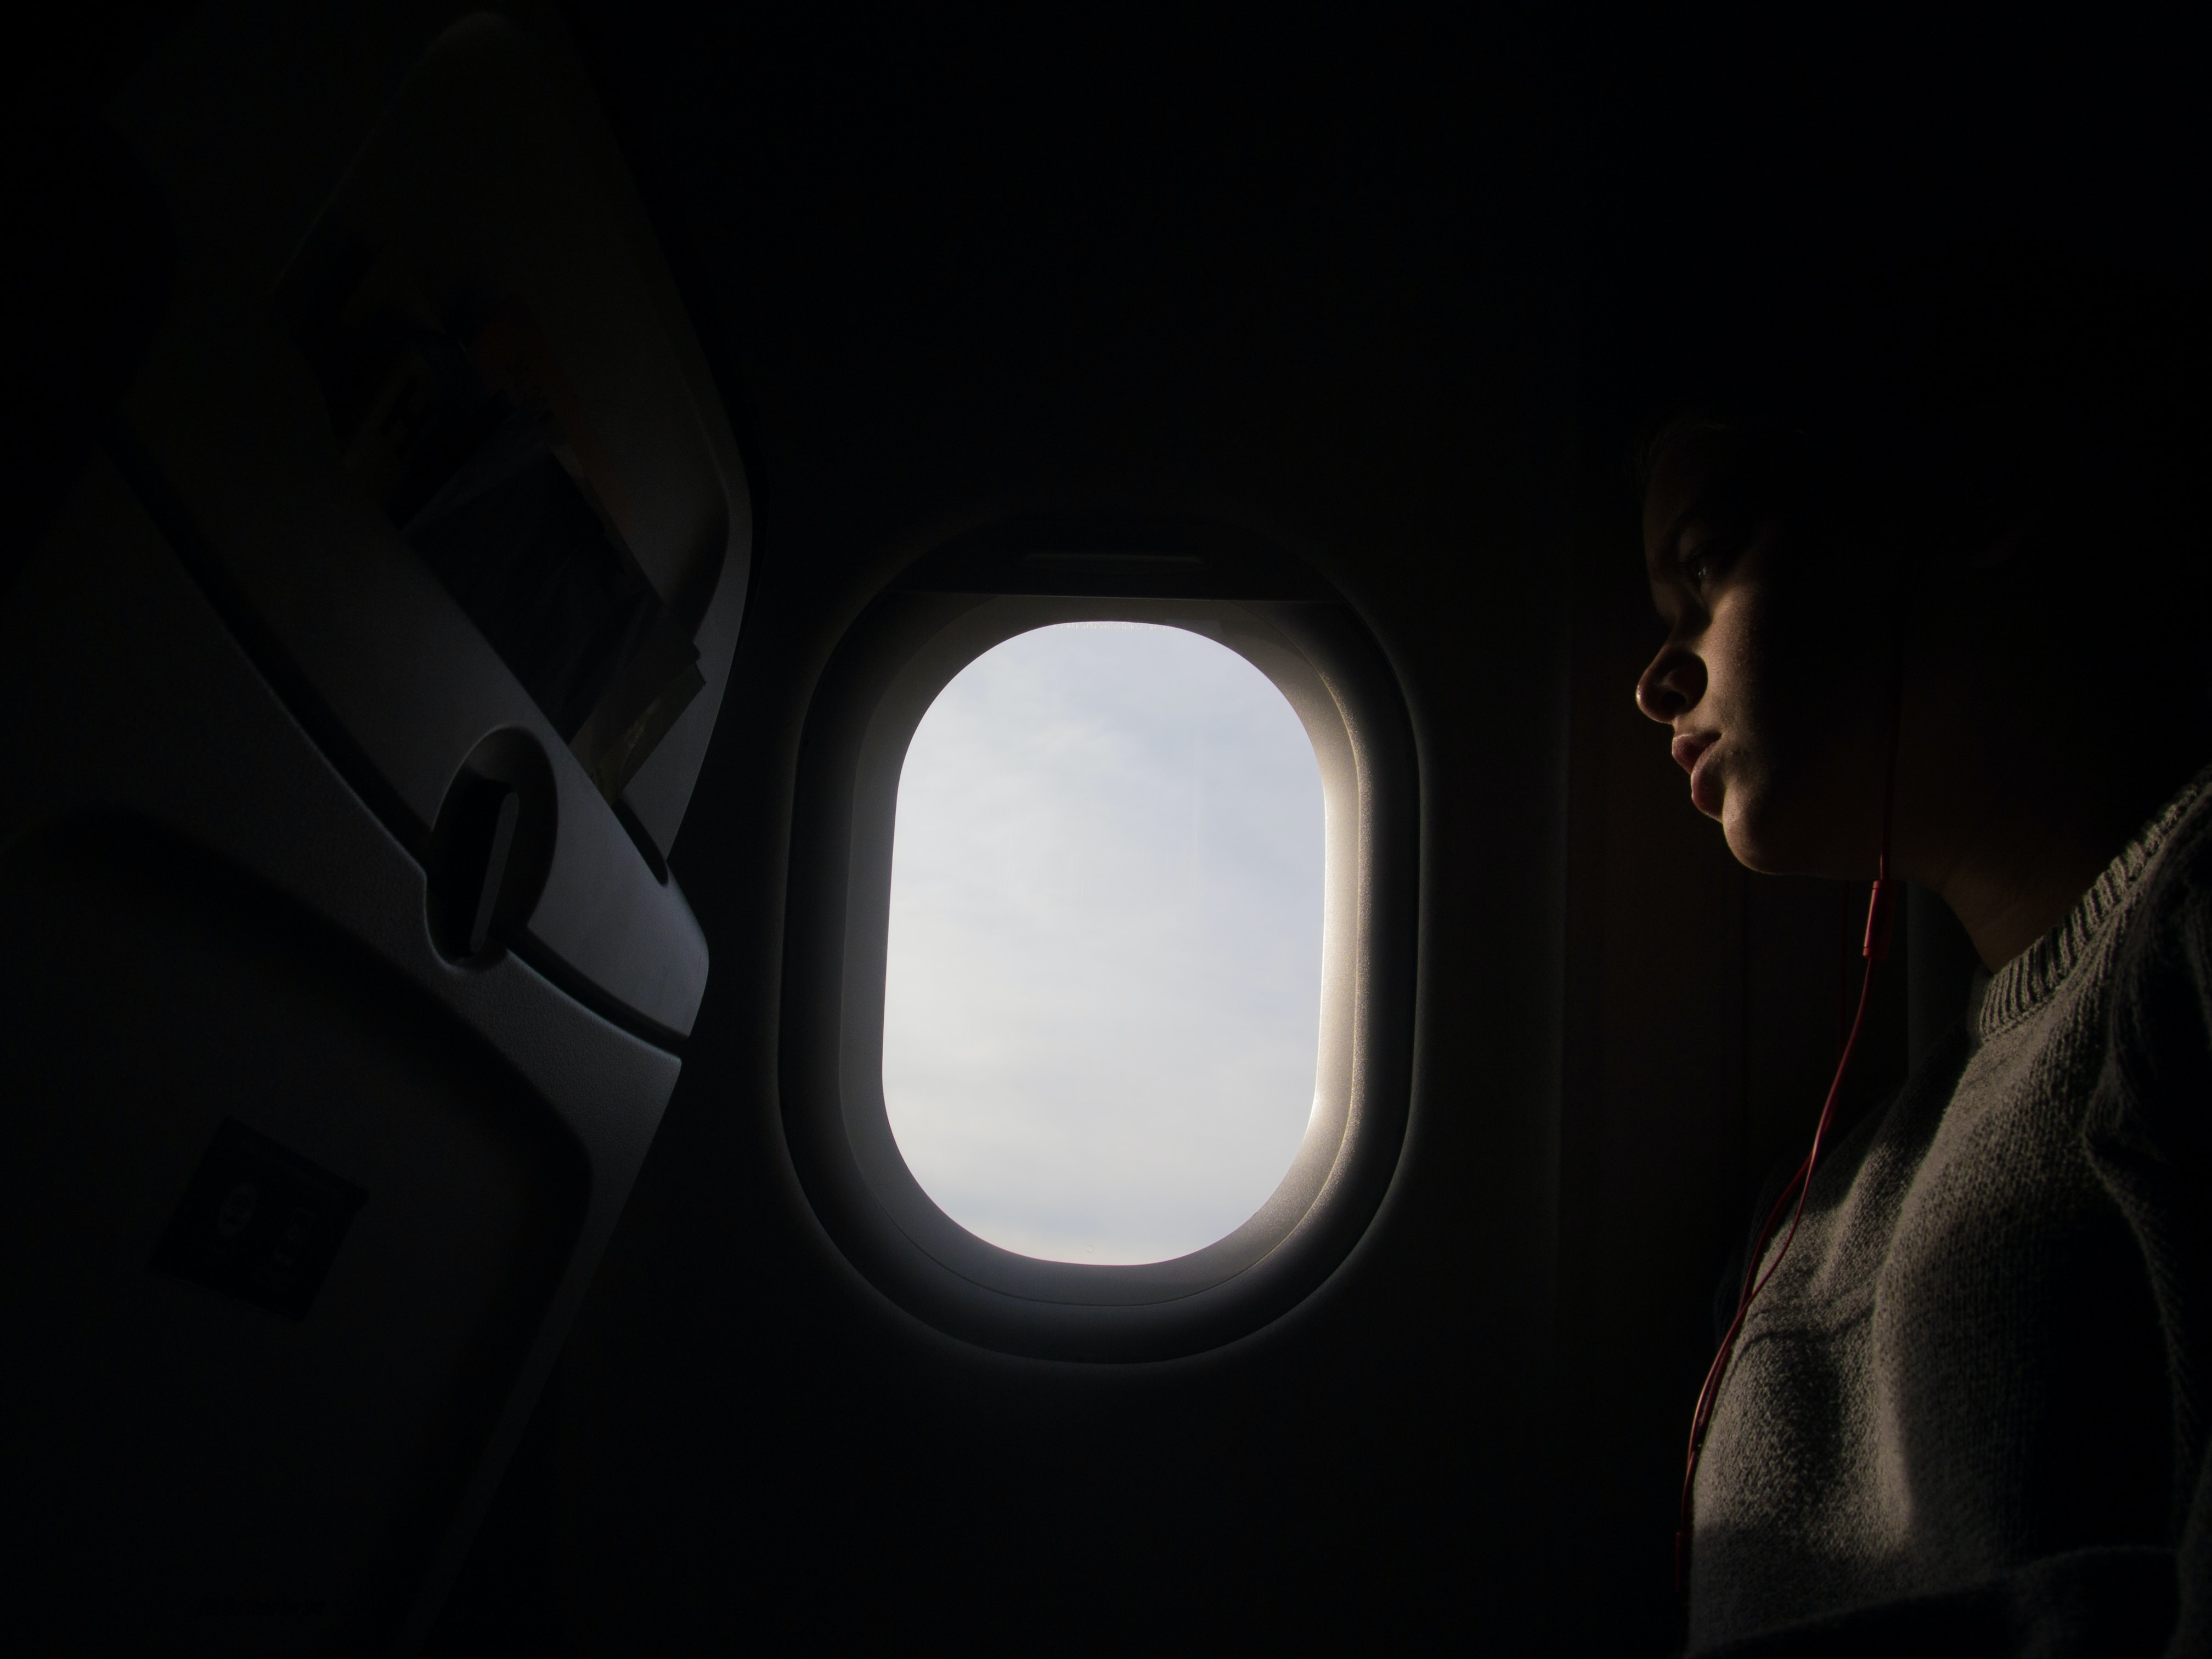 A dim shot of a person sitting next to an oval airplane window